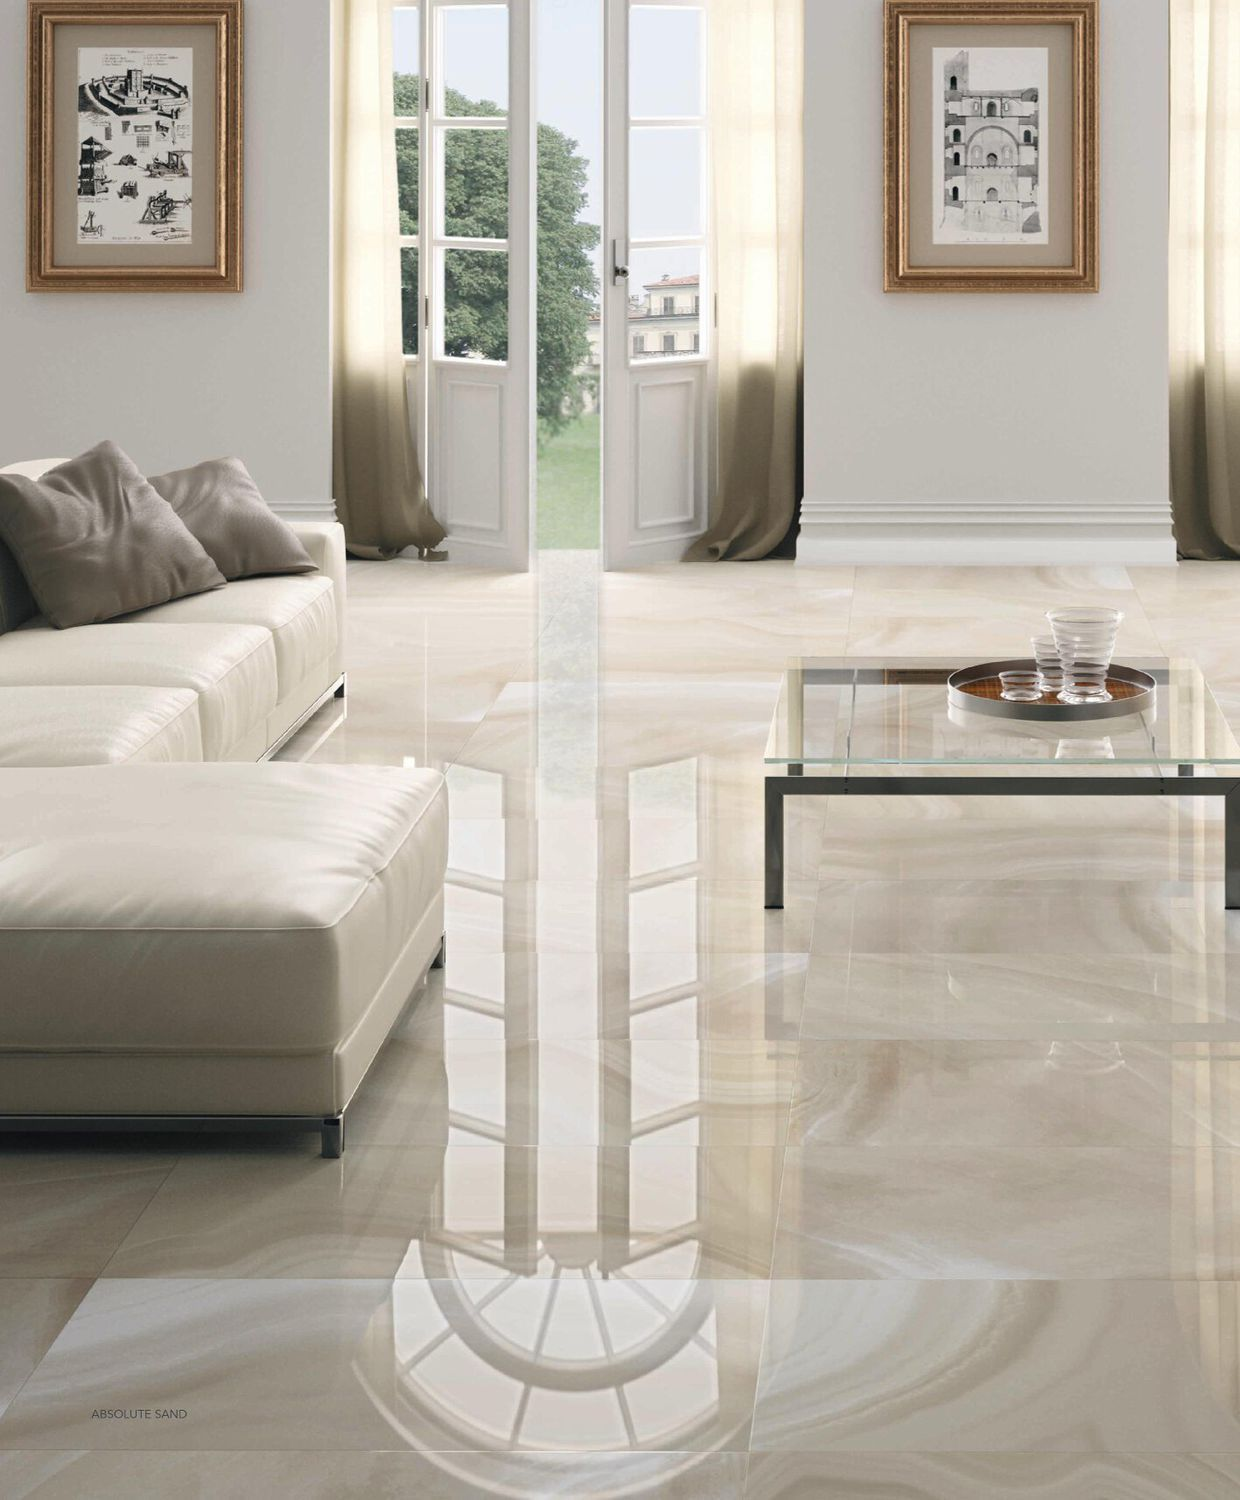 Living Room Floor Tiles Design Fascinating Floor Tile  Porcelain Stoneware  Highgloss  Stone Look High Design Ideas